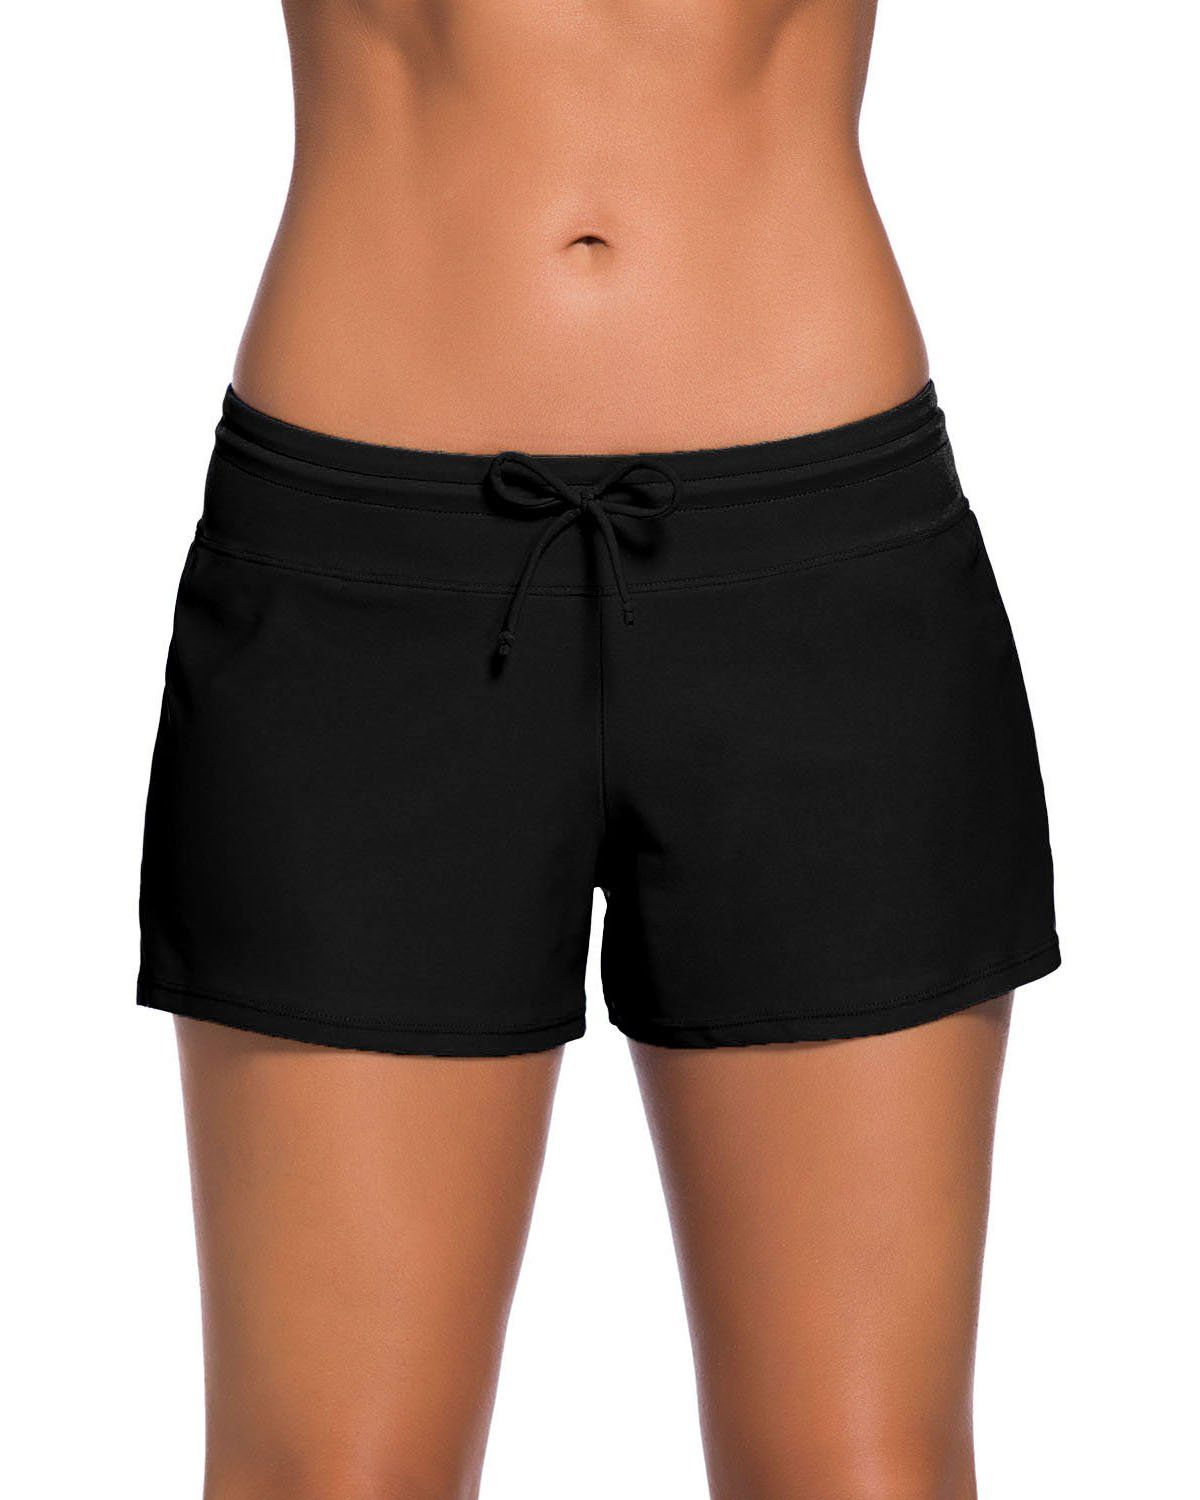 86576cfad5 ChinFun Womens Adjustable Waistband Swimsuit Swim Board Shorts SXXXL Black  Size L >>> You can get more details by clicking on the image.